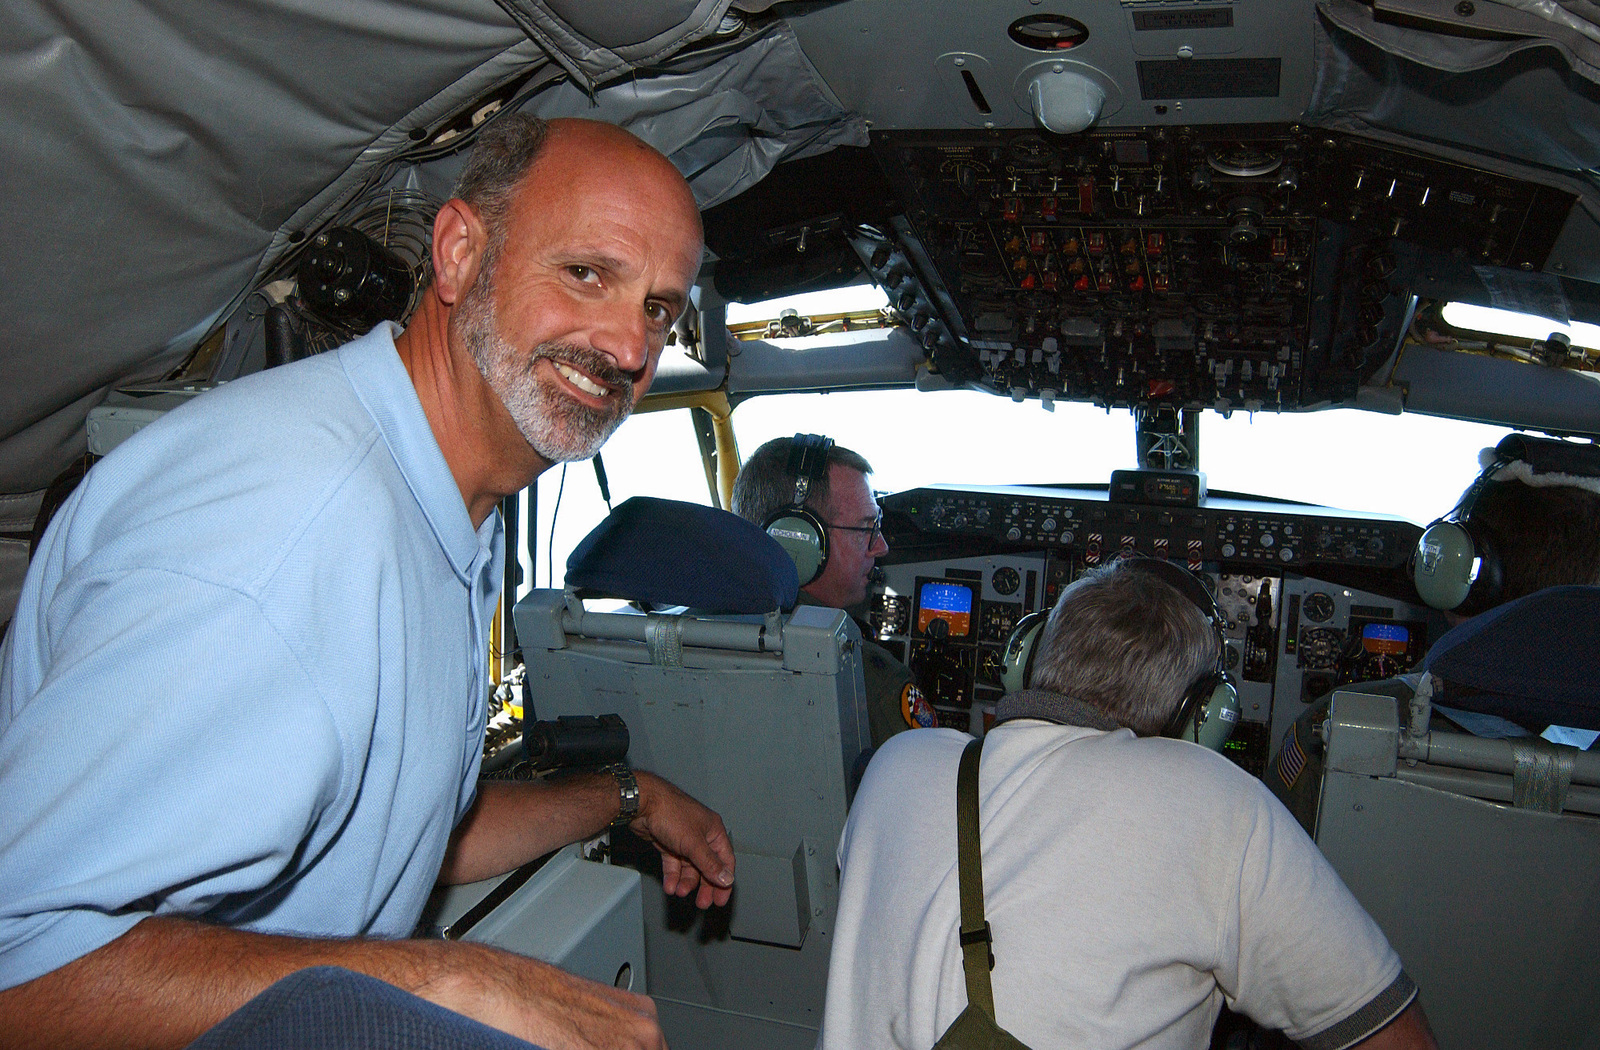 Karl Oskoian of General Dynamics enjoys his flight in the cockpit of a KC 135 Statotanker during a refueling mission in support of the US Air Force (USAF) Thunderbirds during the 2003 Selfridge Air Show in Michigan (MI)